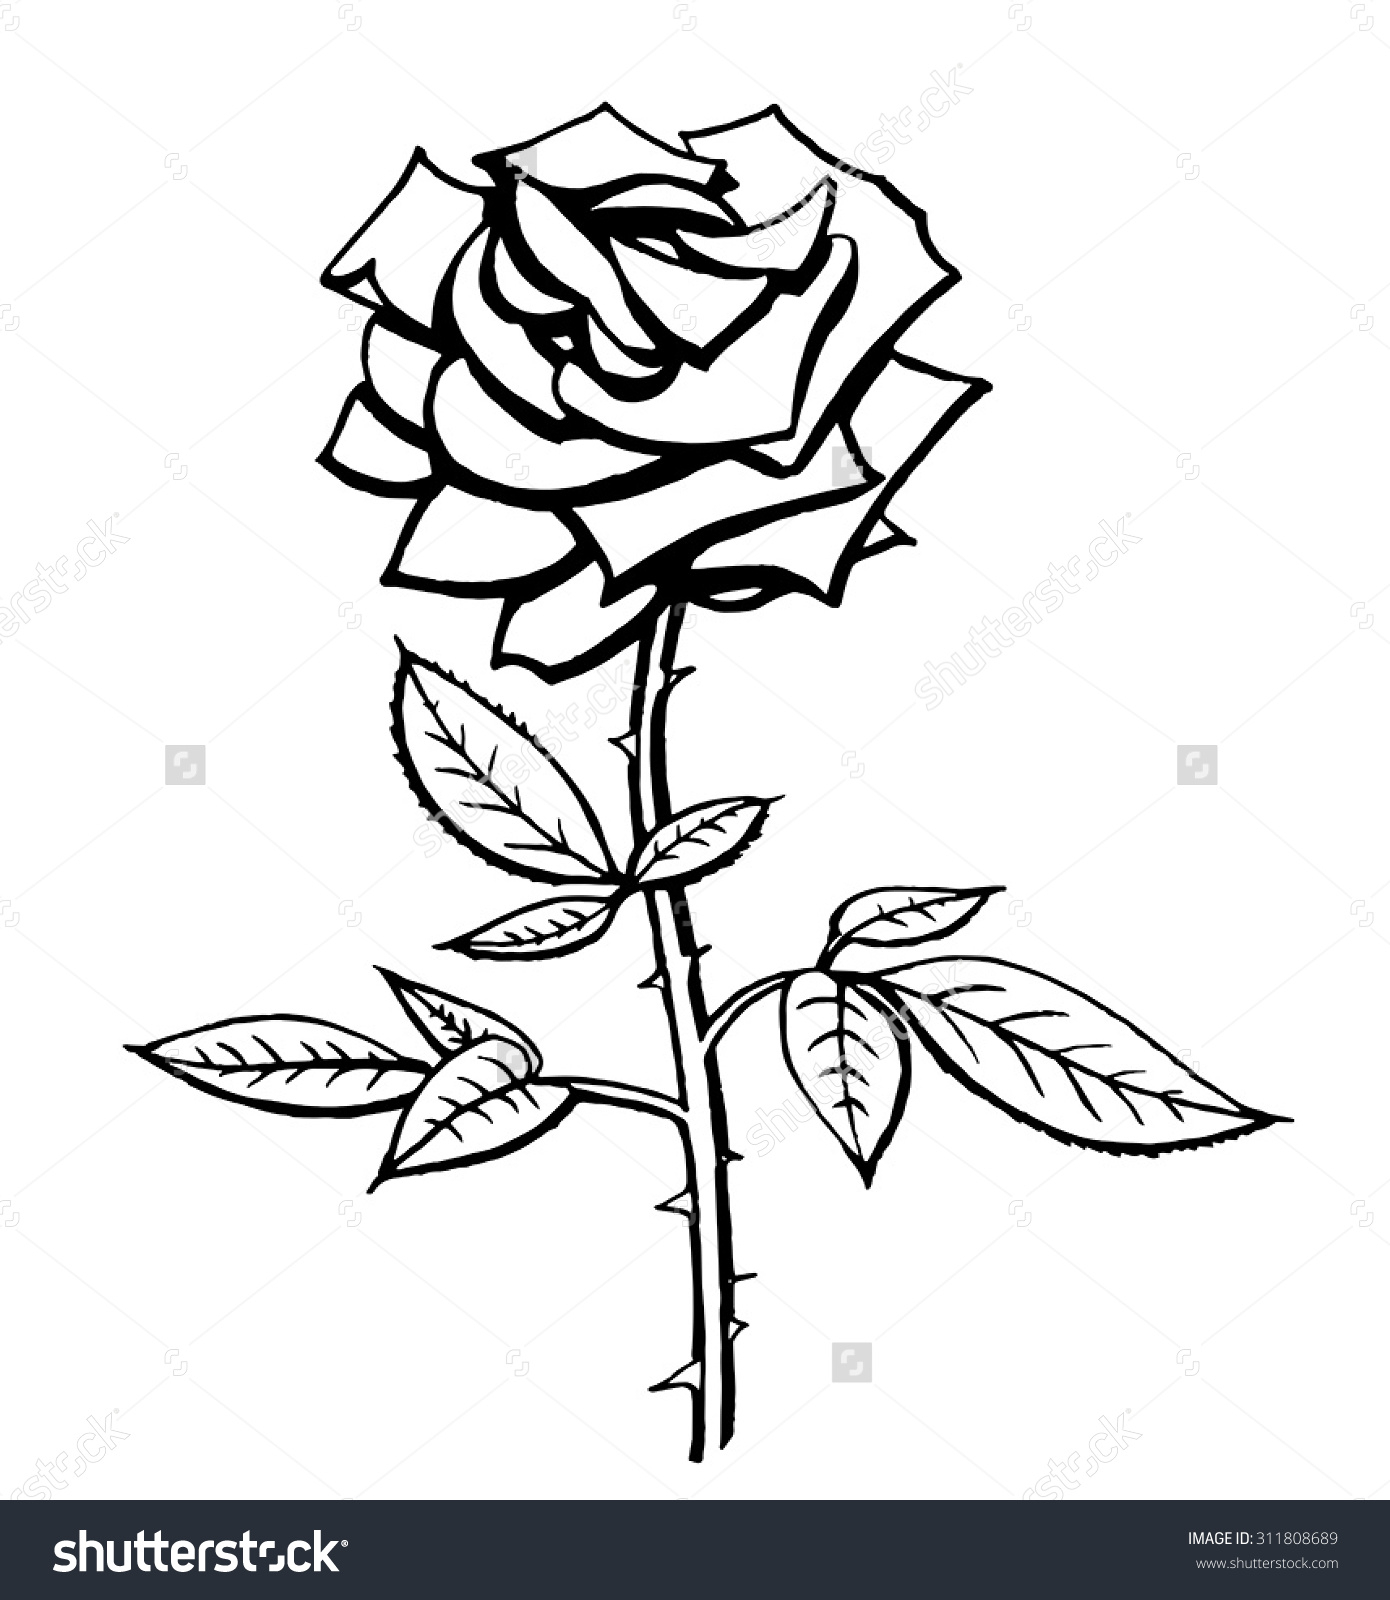 1390x1600 Black And White Rose Drawing Vector Black White Rose Drawing